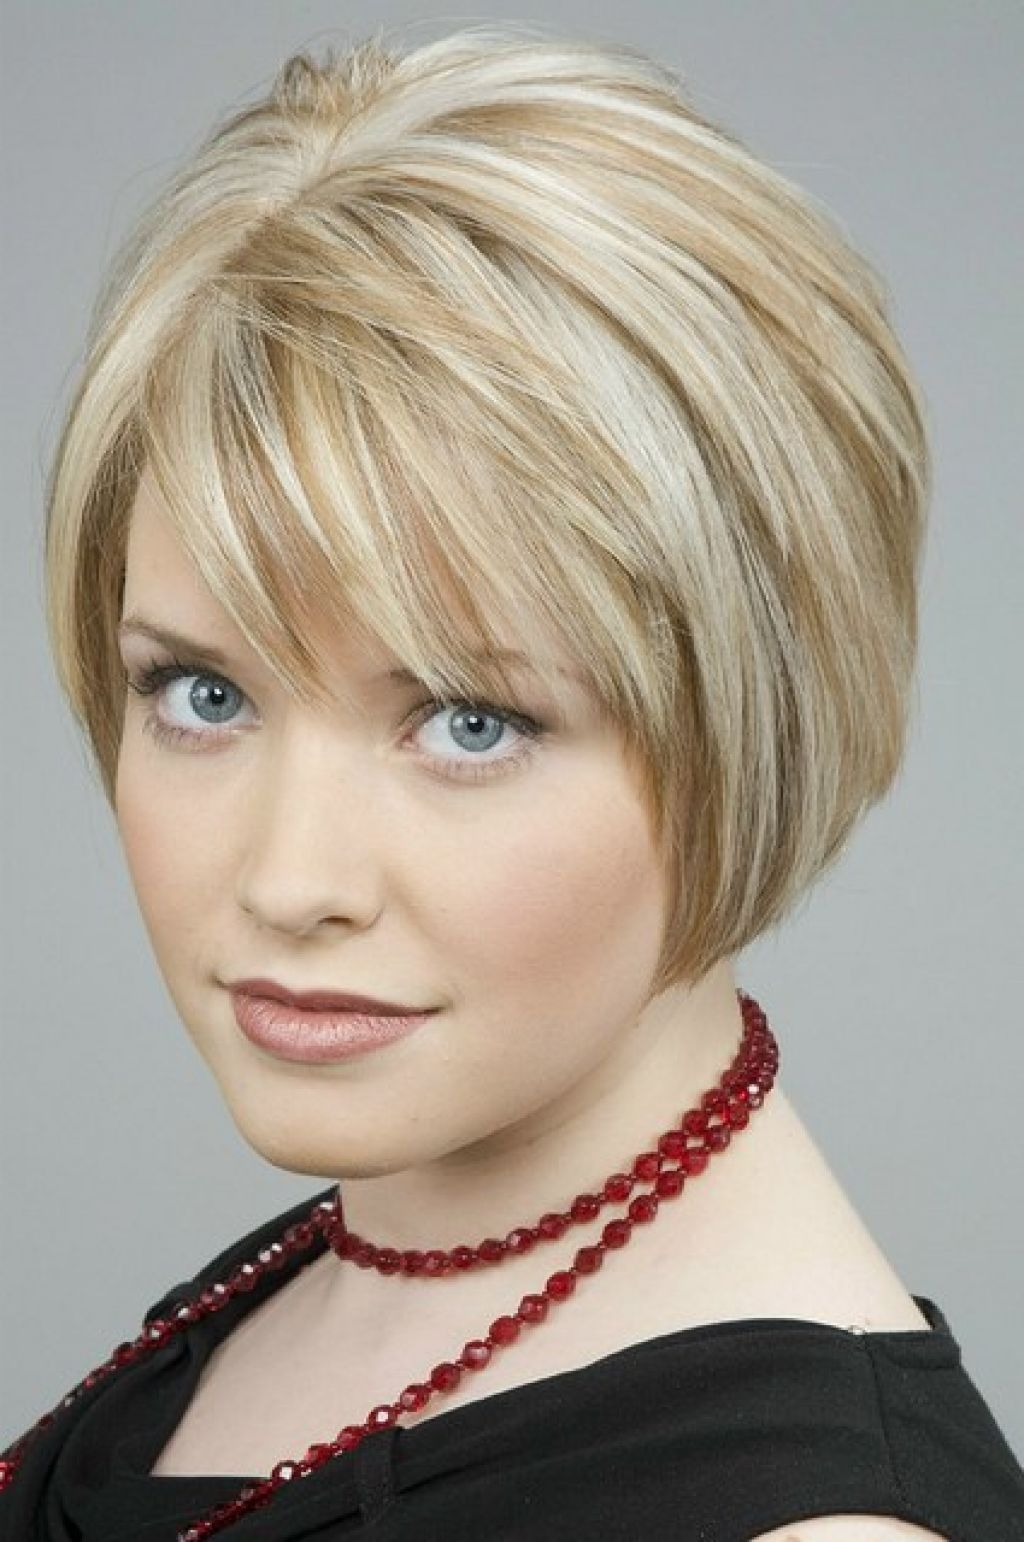 Short Layered Bob Hairstyles For Fine Hair | Hair styles ...